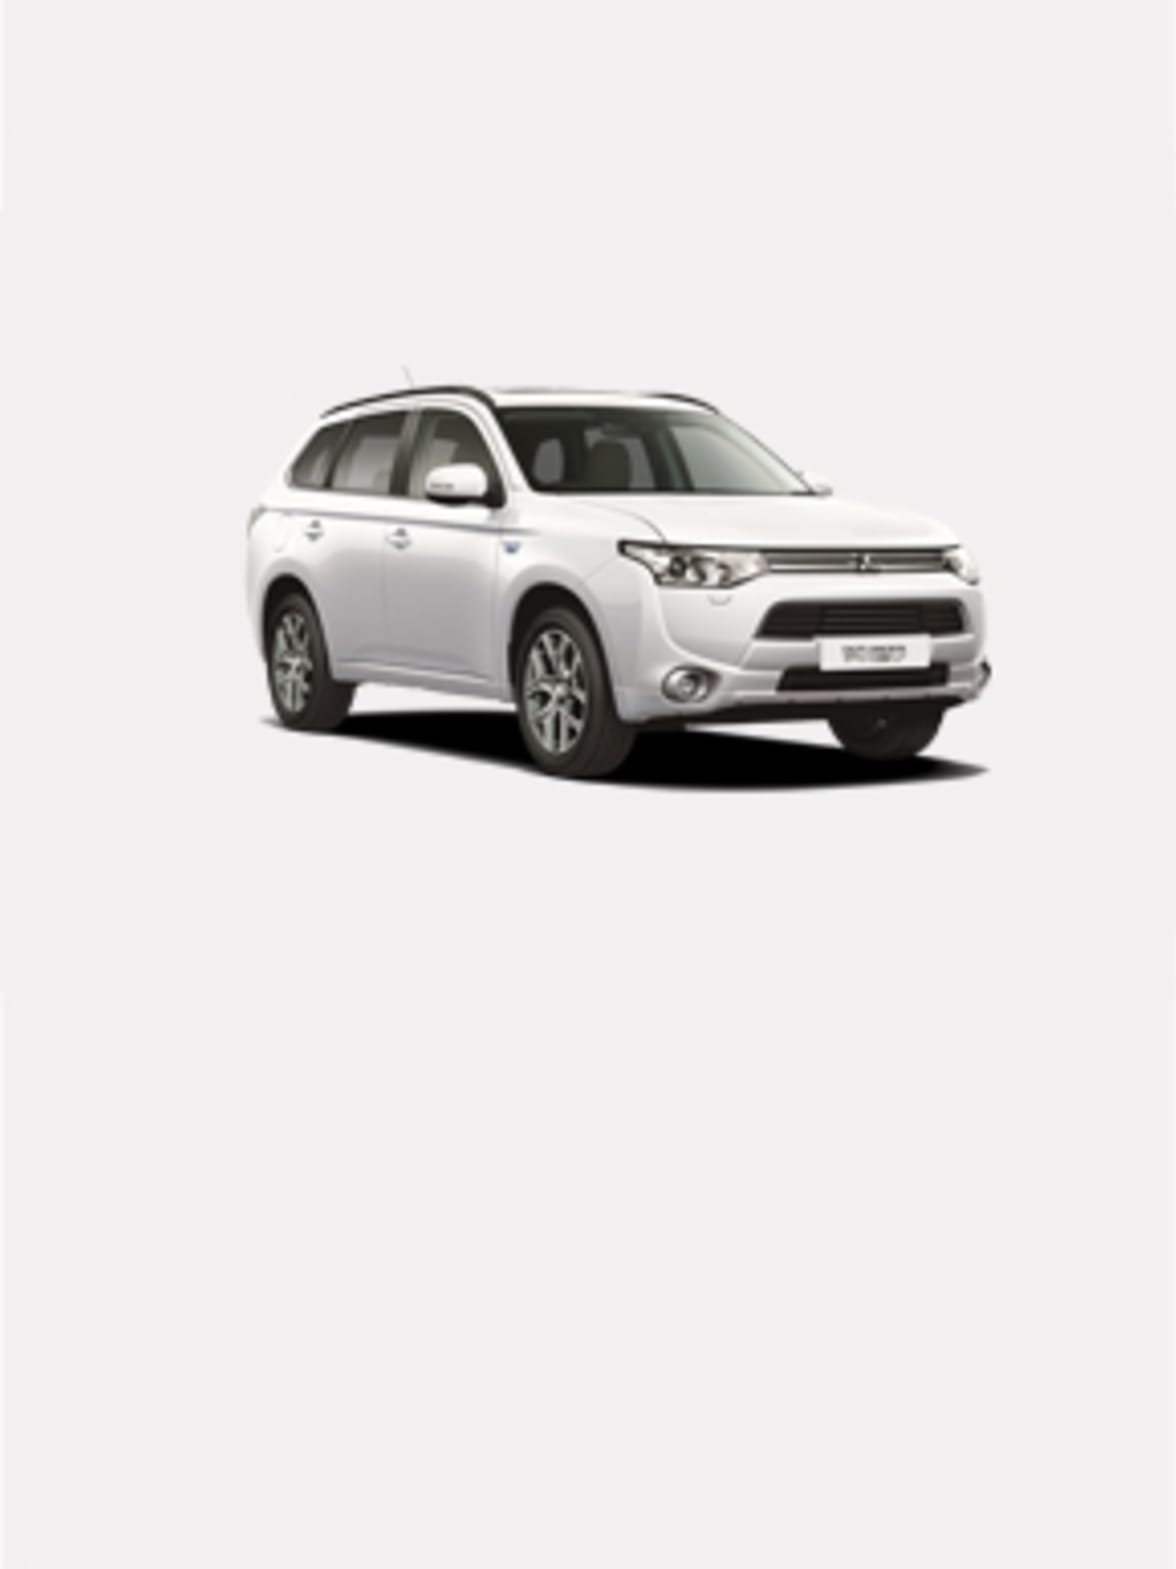 Used Mitsubishi Cars We Have Over 20 Years Experience In Providing High  Quality Approved View Used Mitsubishi